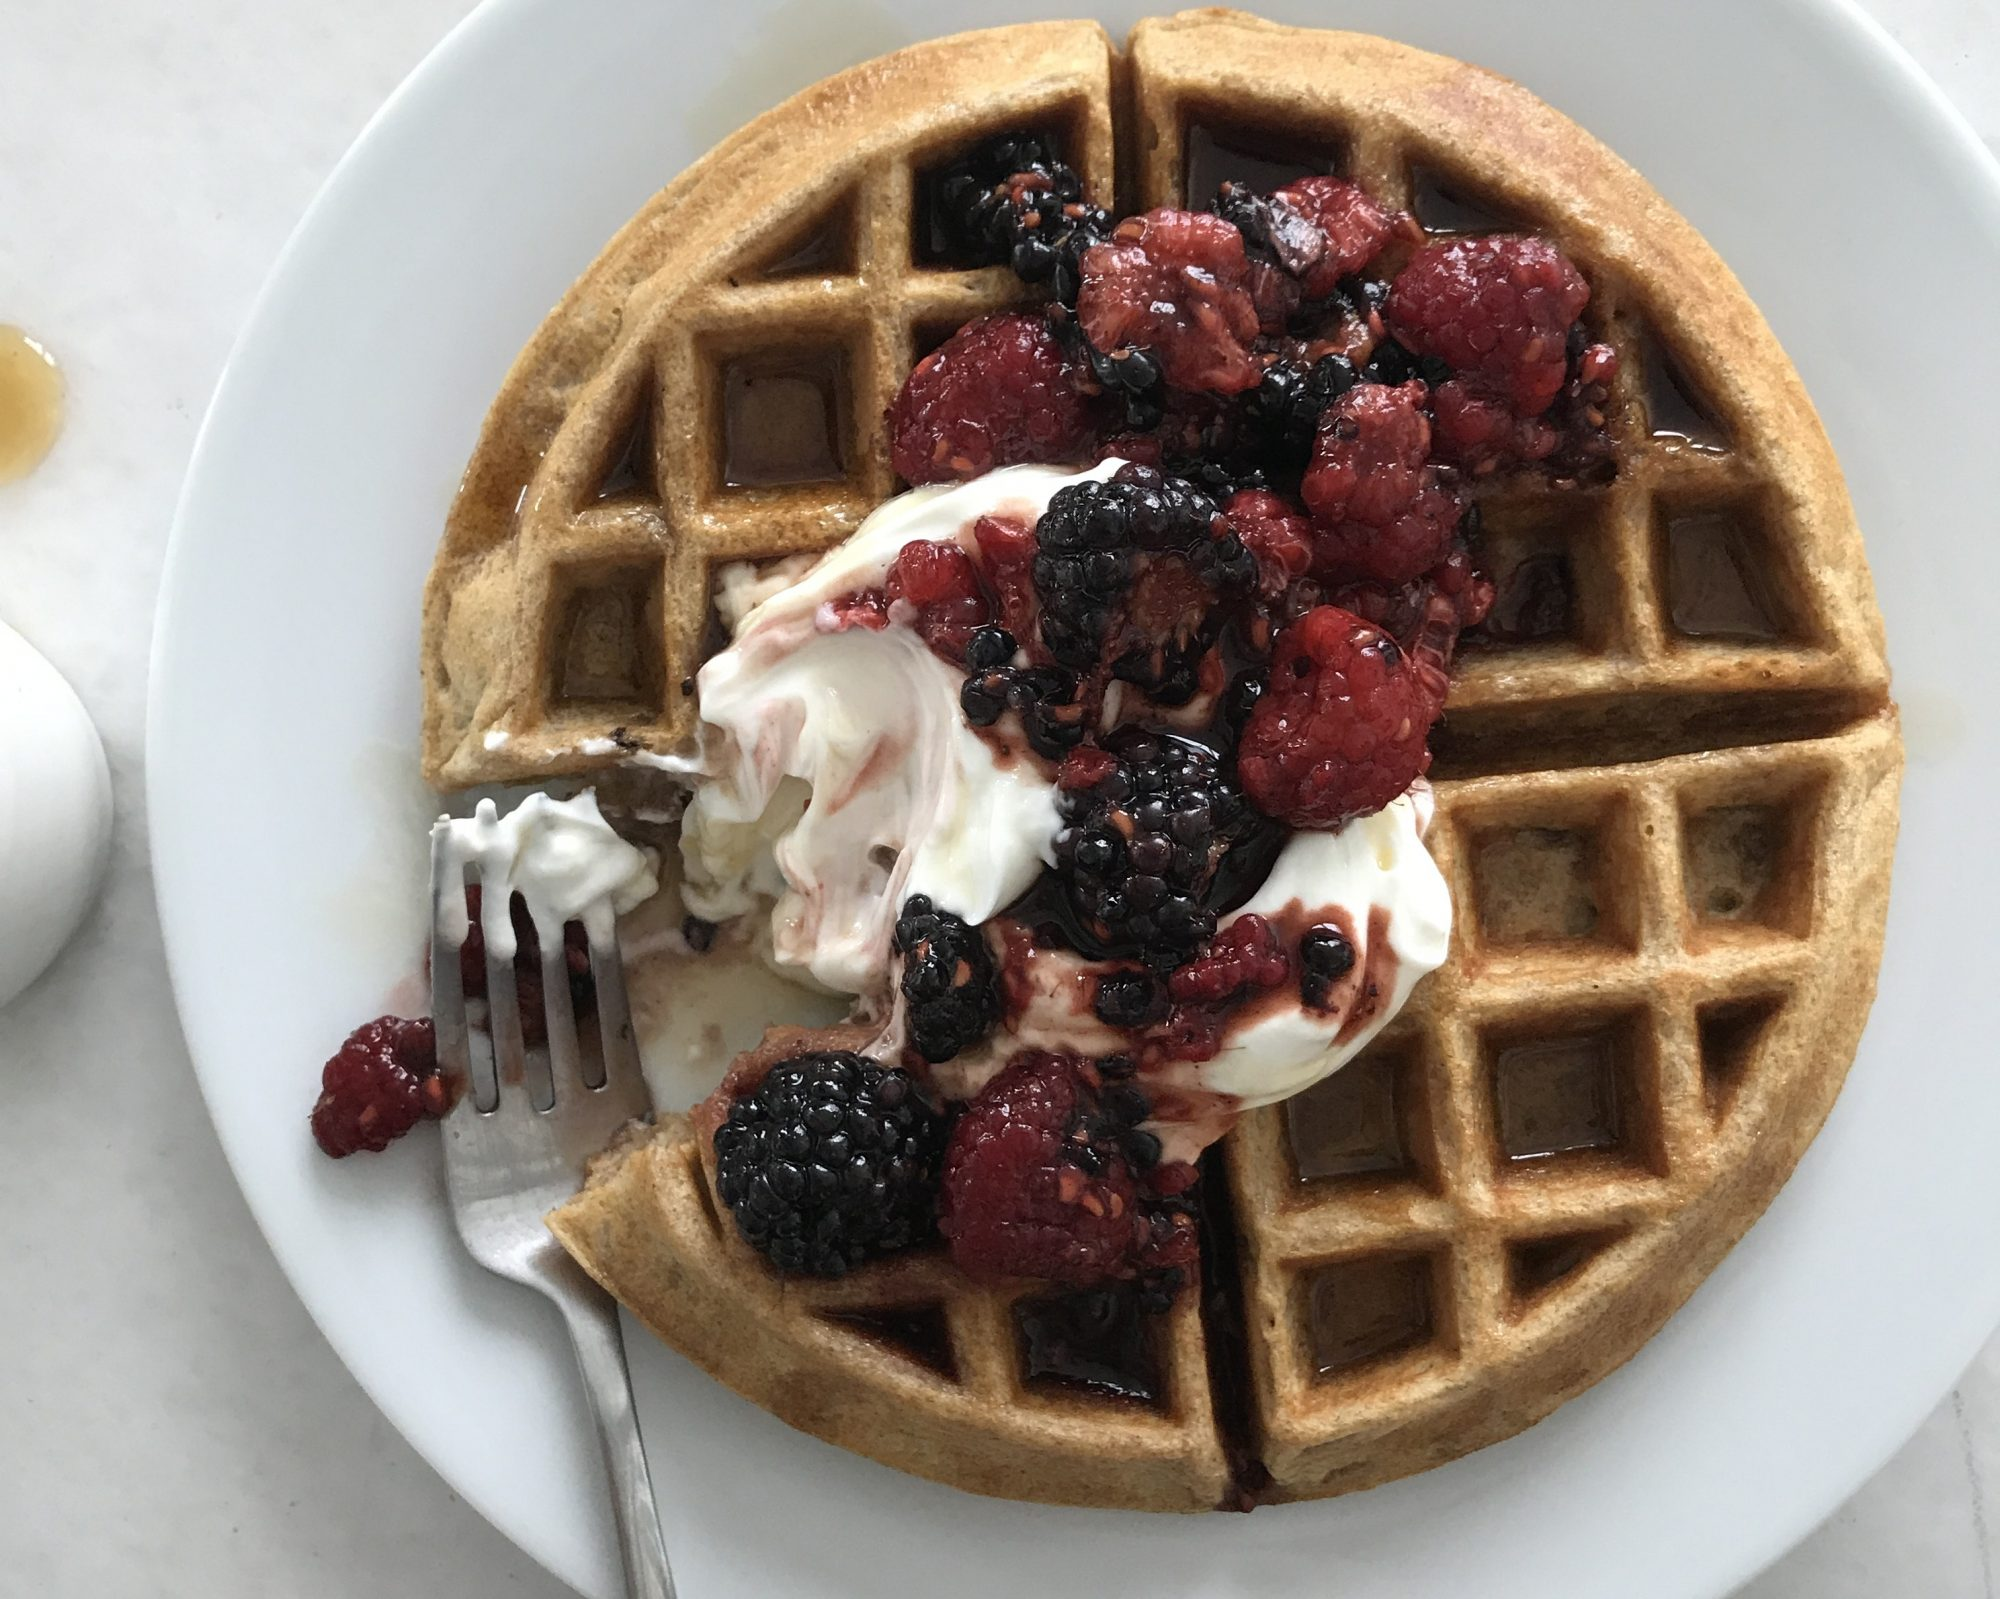 waffles topped with berries